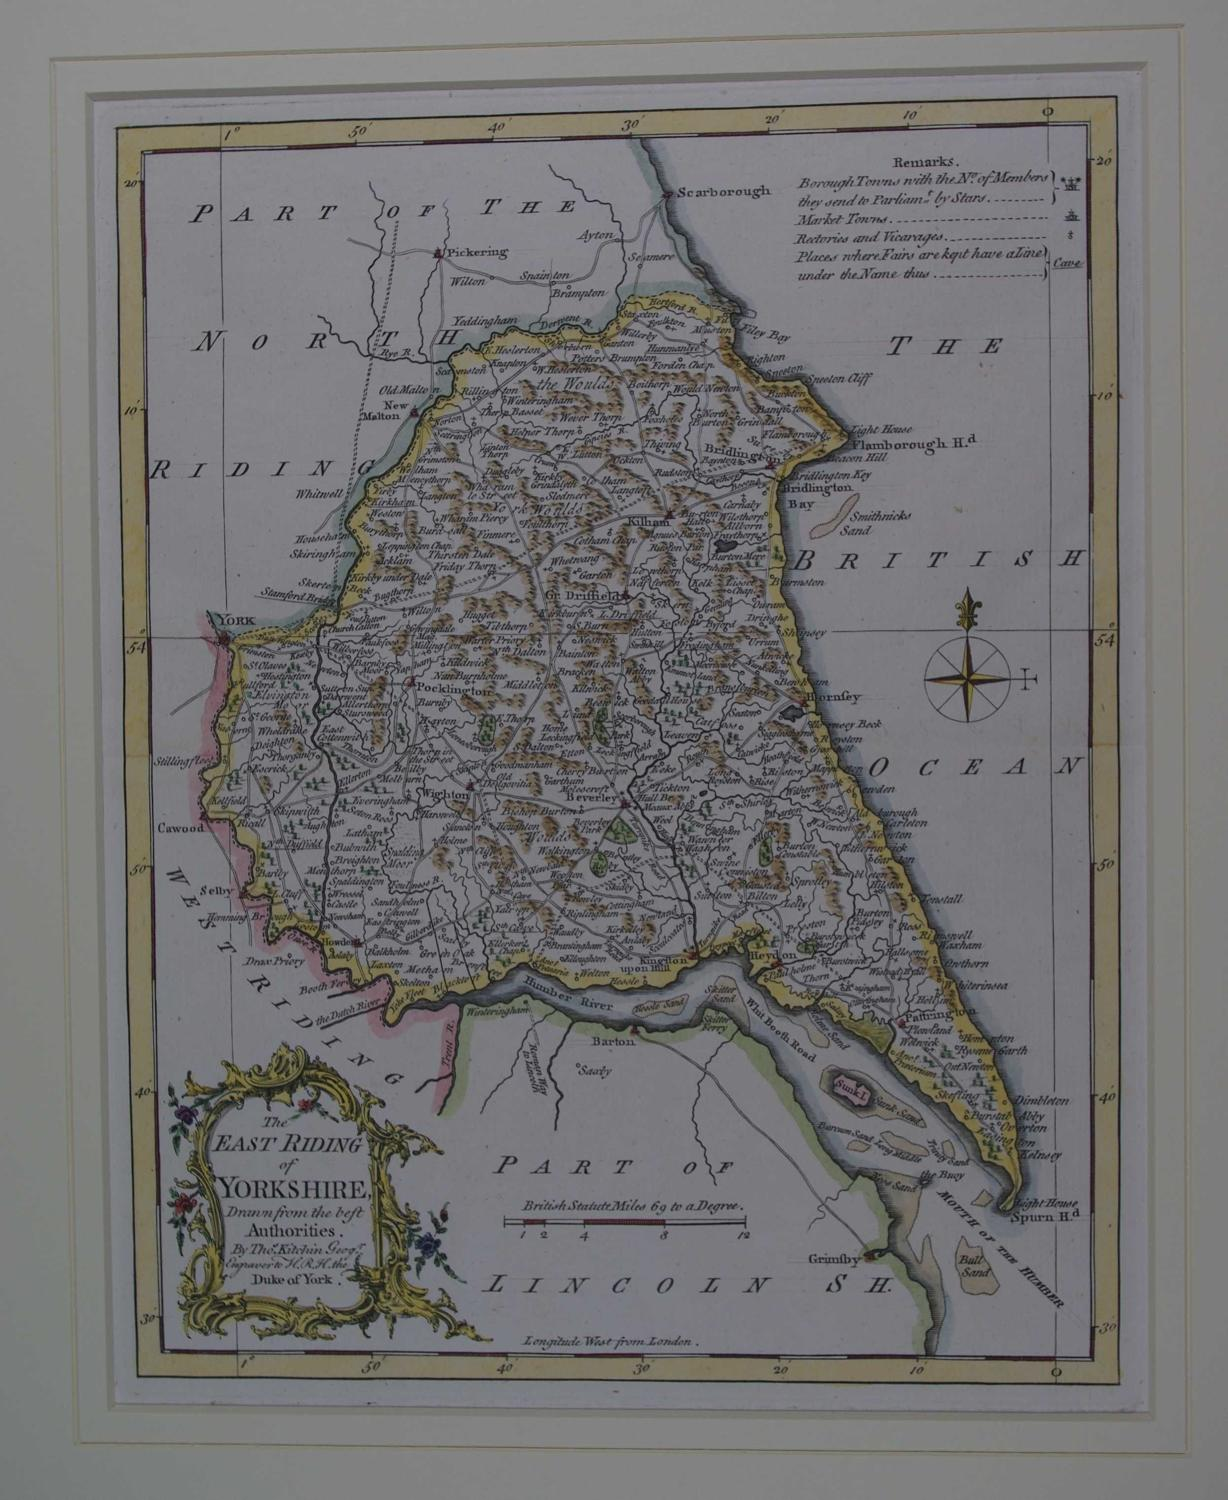 The East Riding of Yorkshire Drawn from the best Authorities by Thomas Kitchin